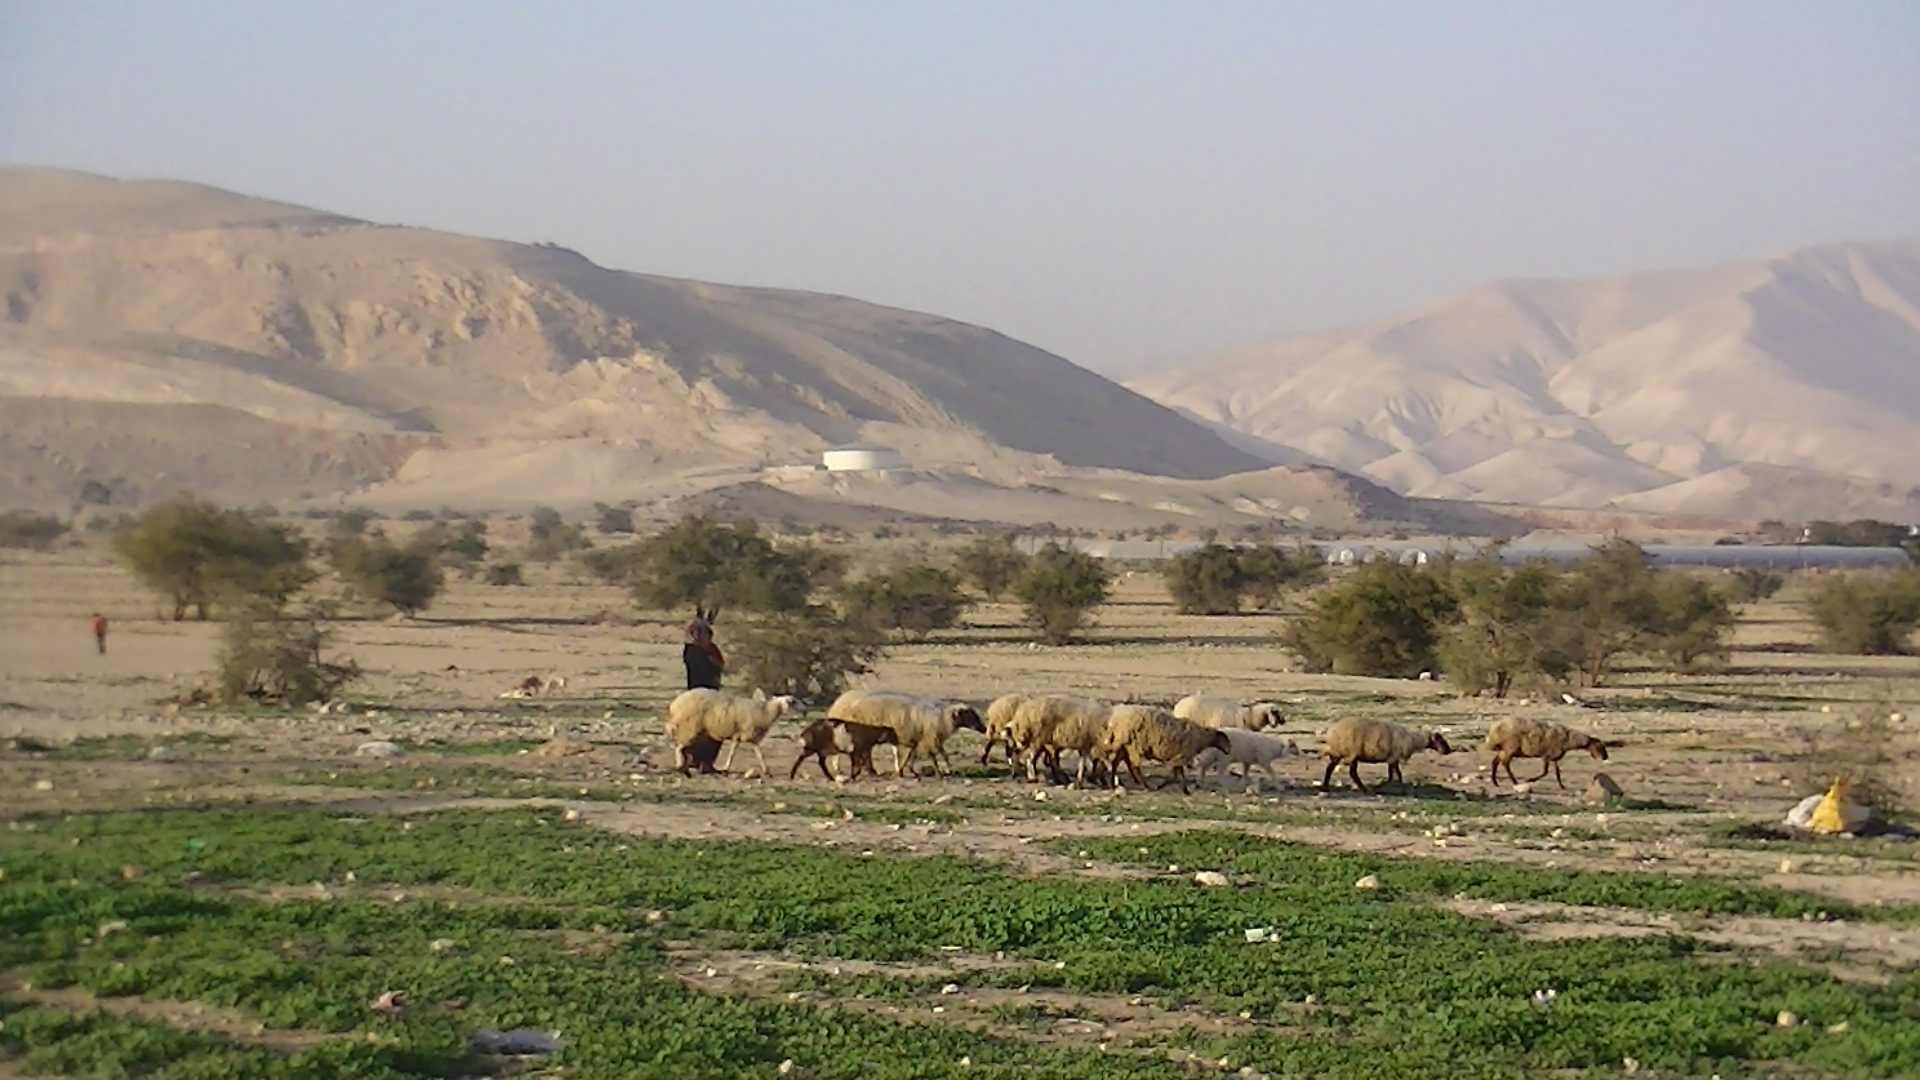 A Palestinian herding animals close to the village of Fasayil close to greenhouses in the settlement of Tomer